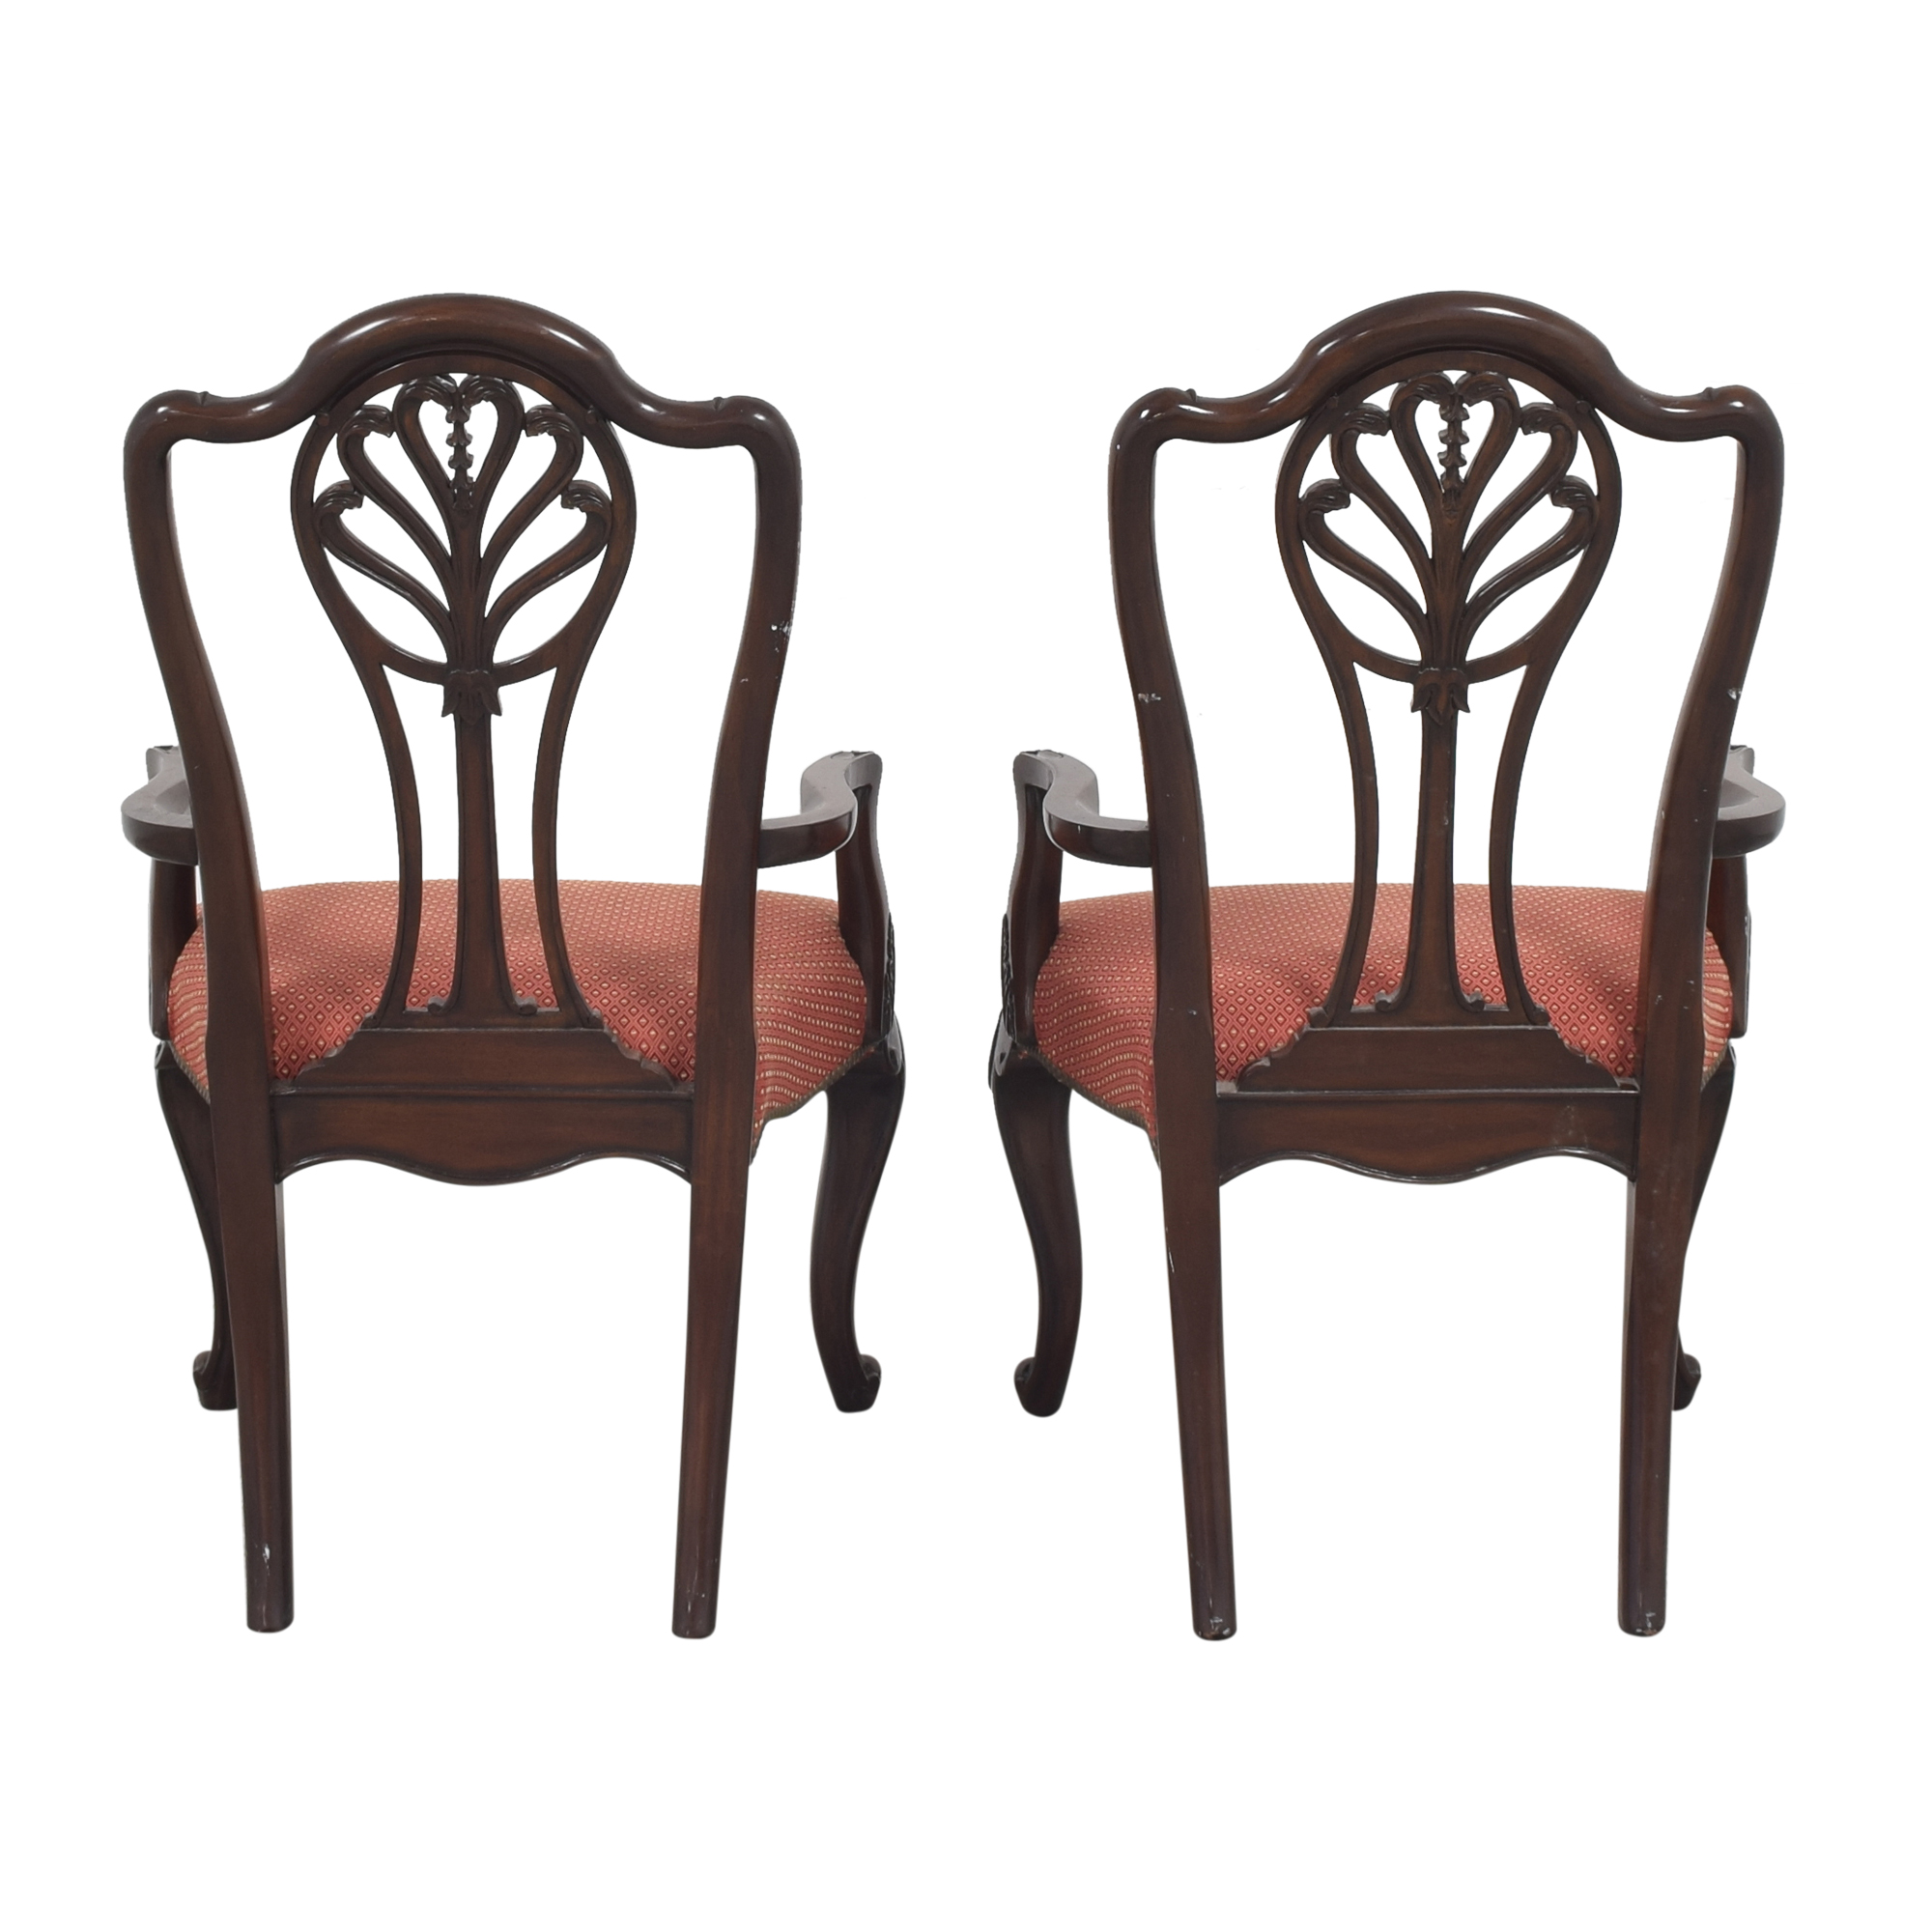 Drexel Heritage Drexel Heritage Upholstered Dining Arm Chairs Dining Chairs